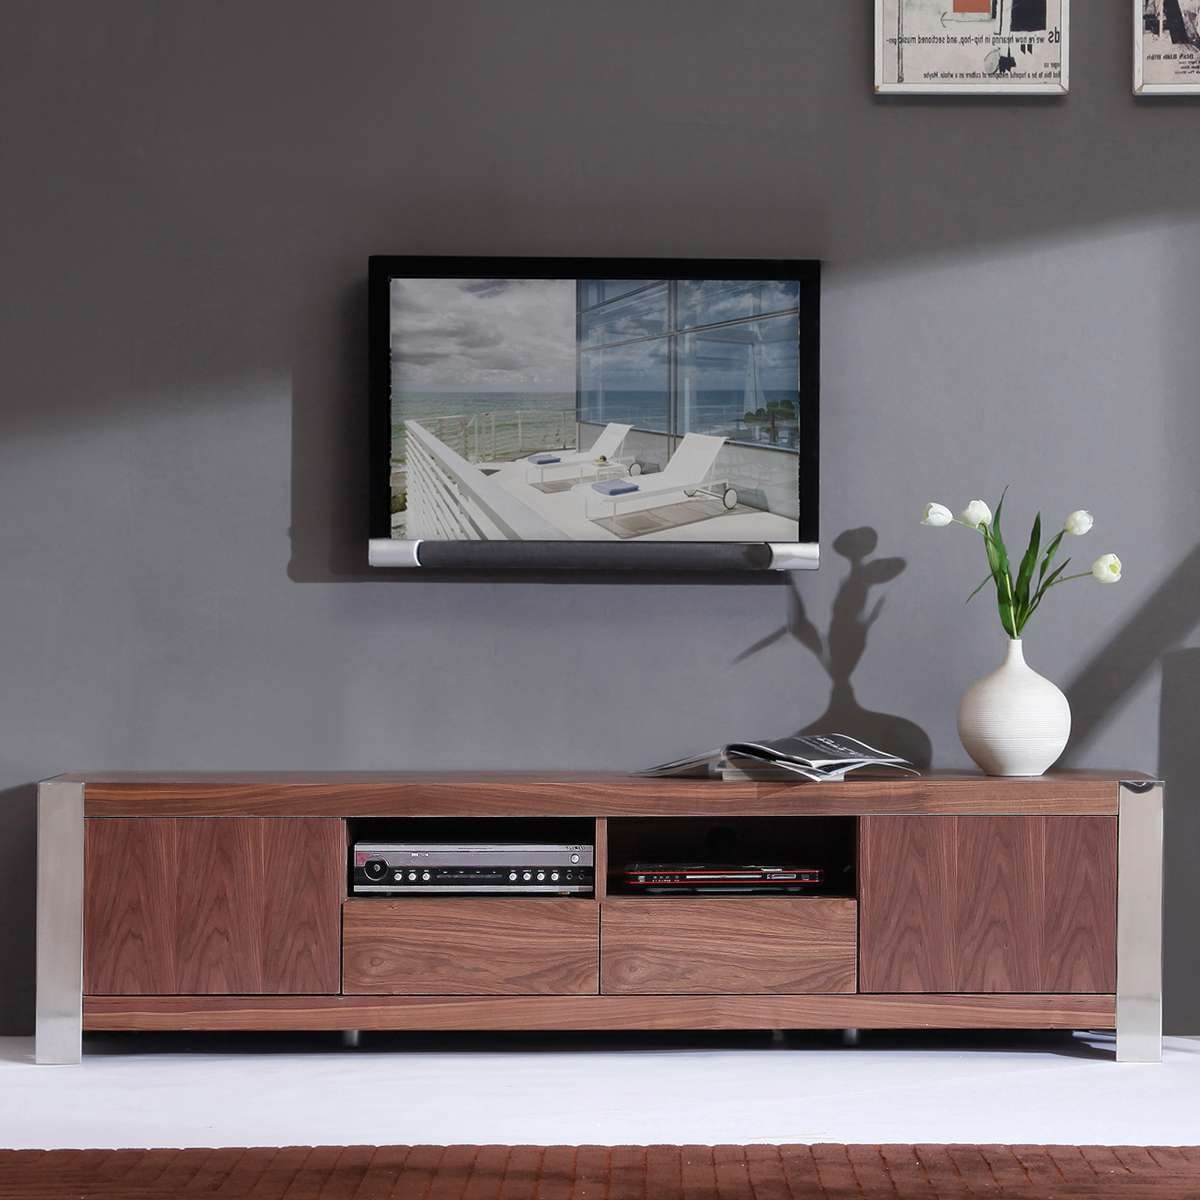 Inspirational 84 Inch Tv Stand 15 About Remodel Simple Home With Regard To 84 Inch Tv Stands (View 5 of 15)